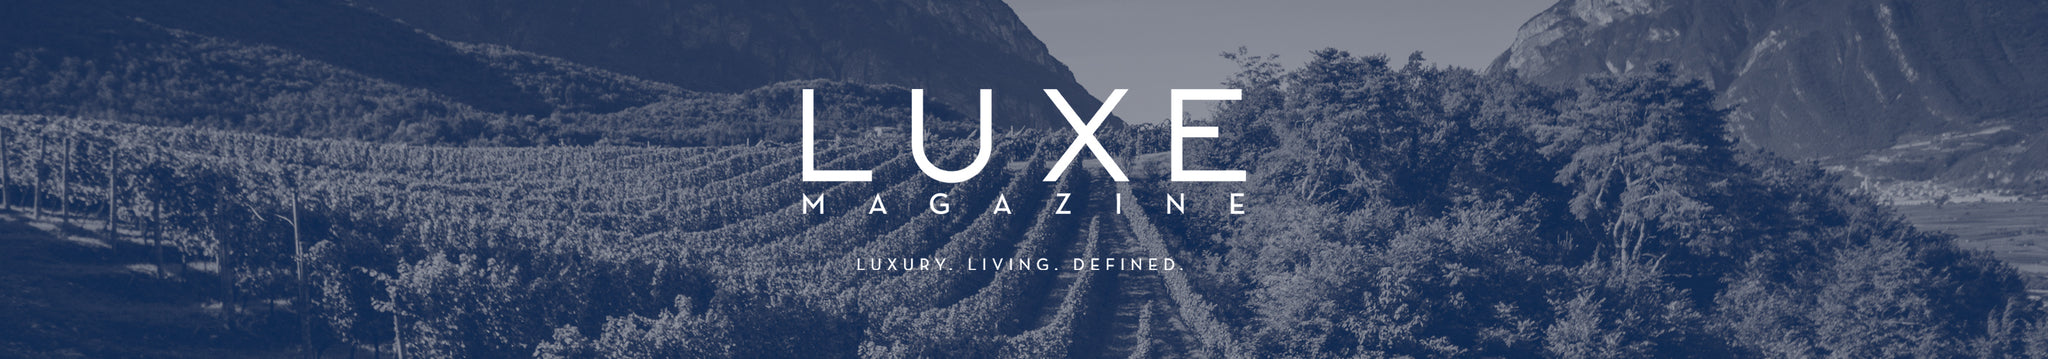 LUXE magazine top picks<br>by Michael Pinkus